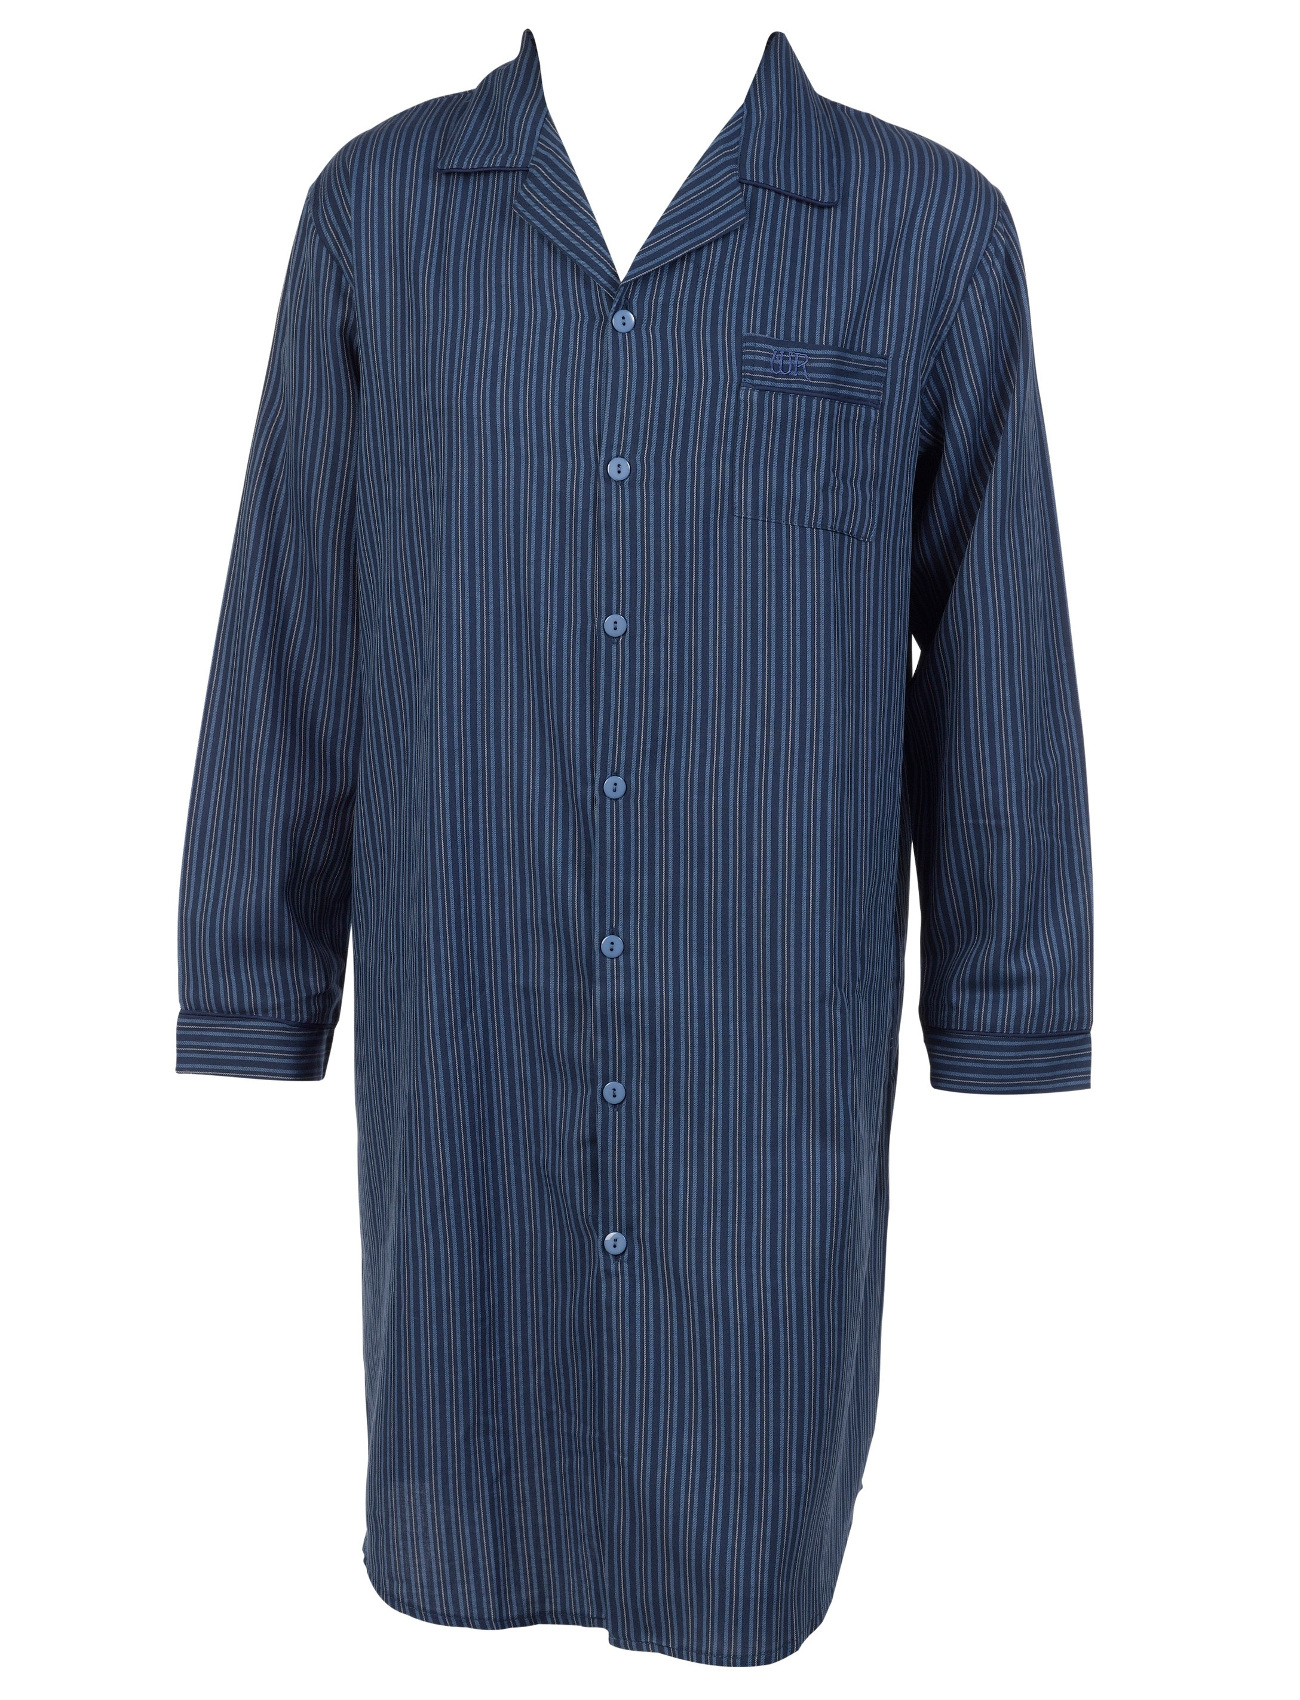 Striped Mens Night Shirt 100 Cotton Walker Reid Button Up